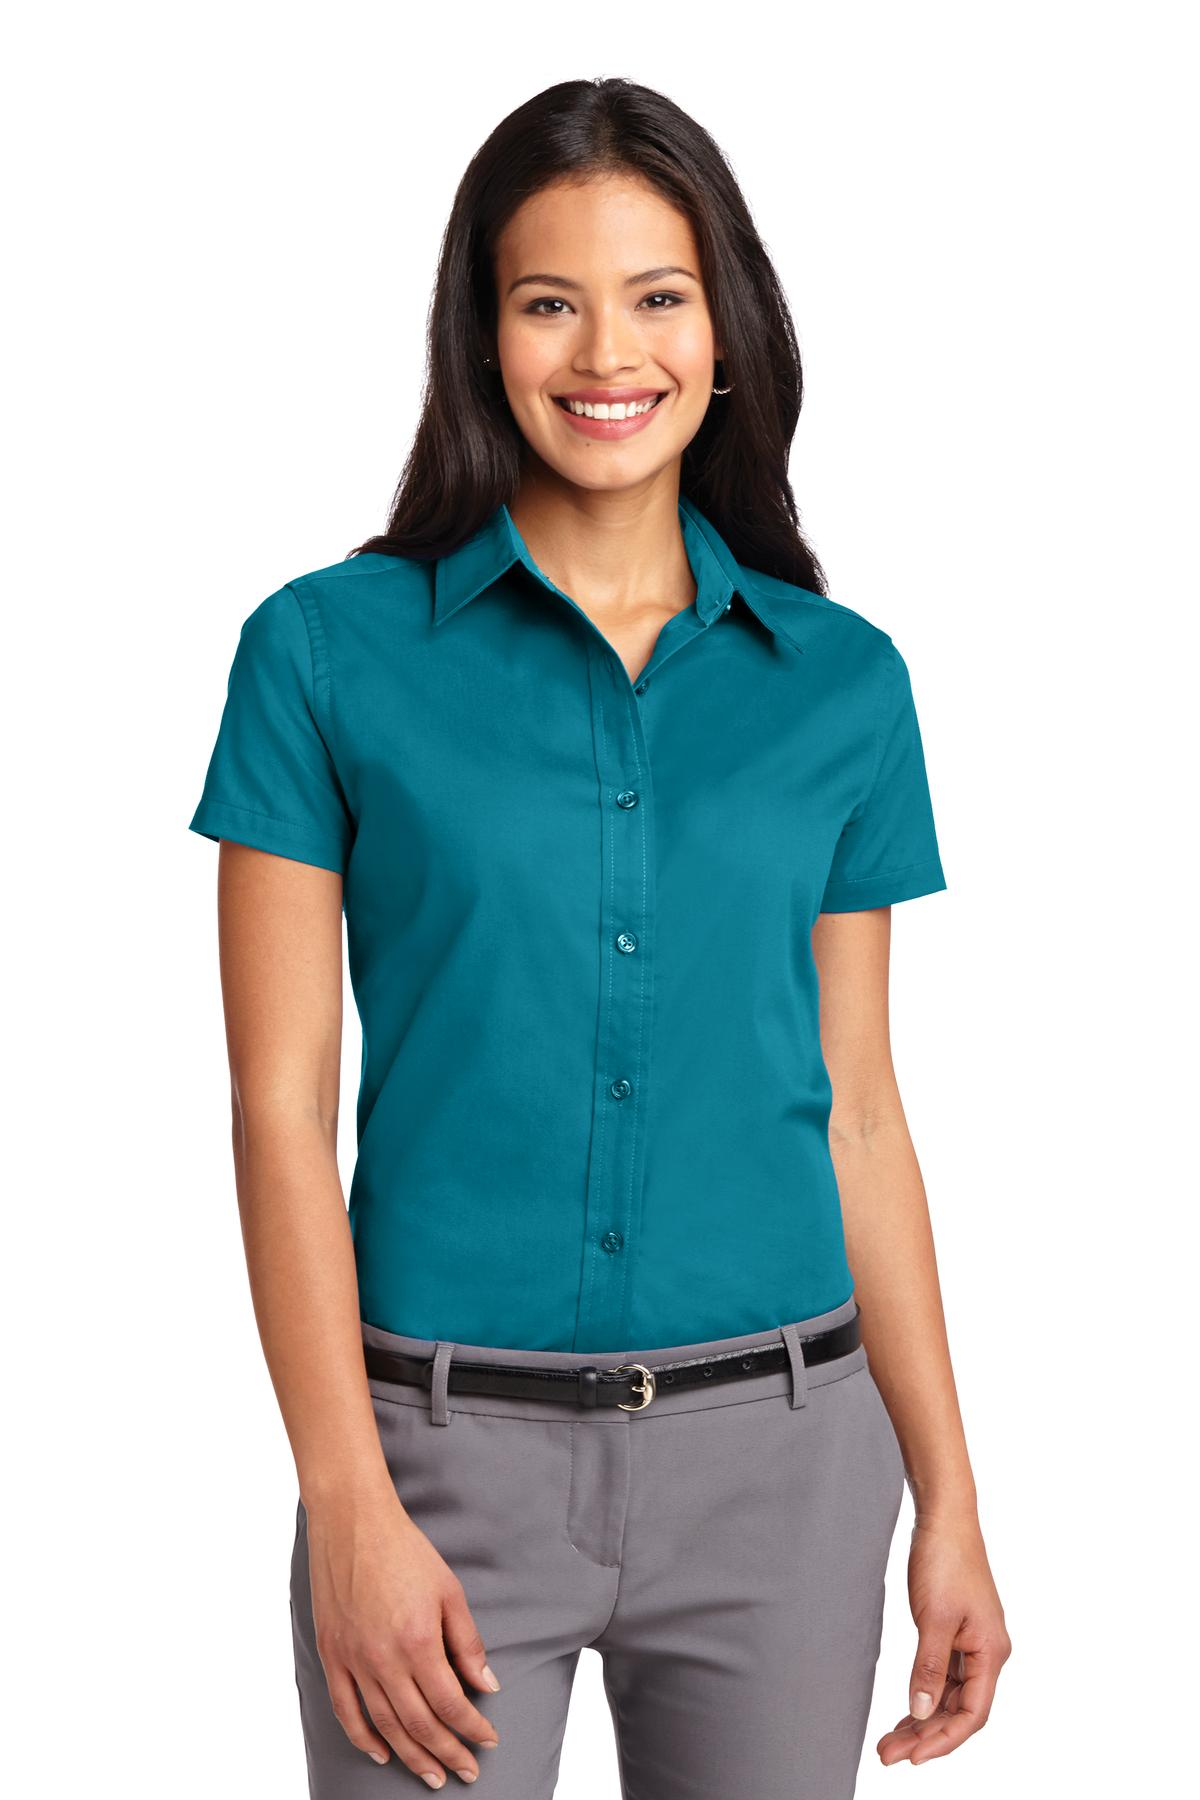 Port Authority ®  Ladies Short Sleeve Easy Care  Shirt.  L508 - Teal Green